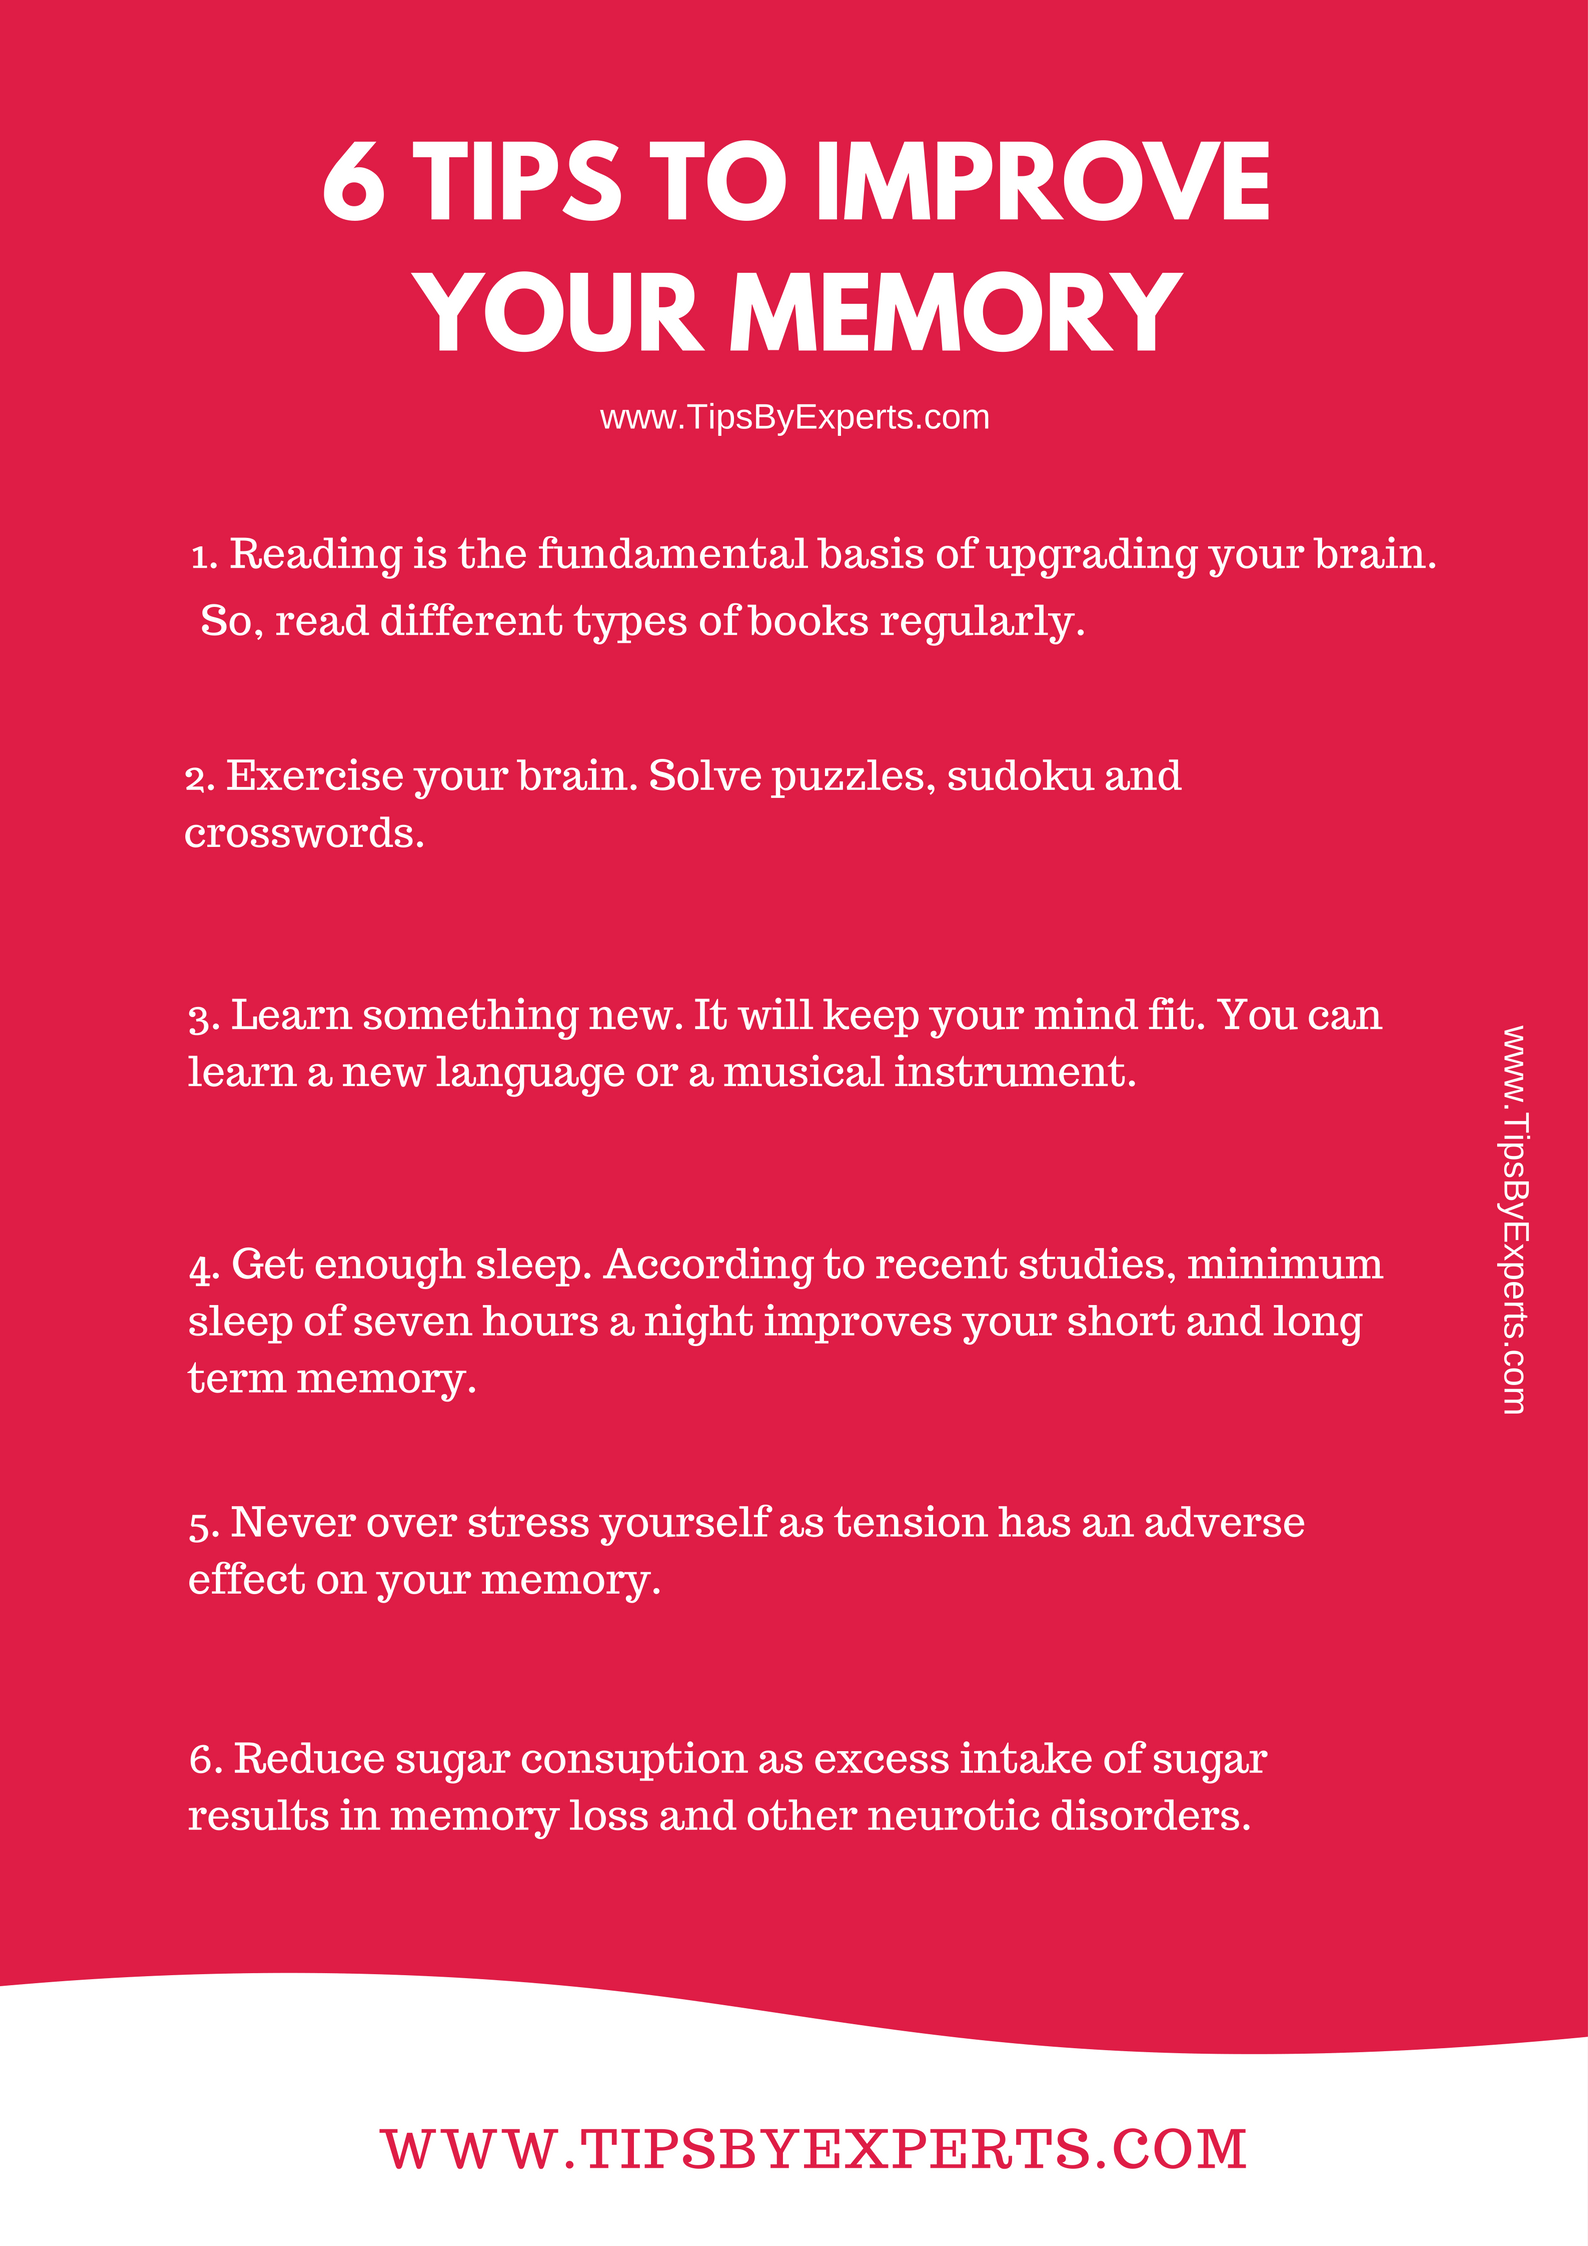 6 tips to improve your memory